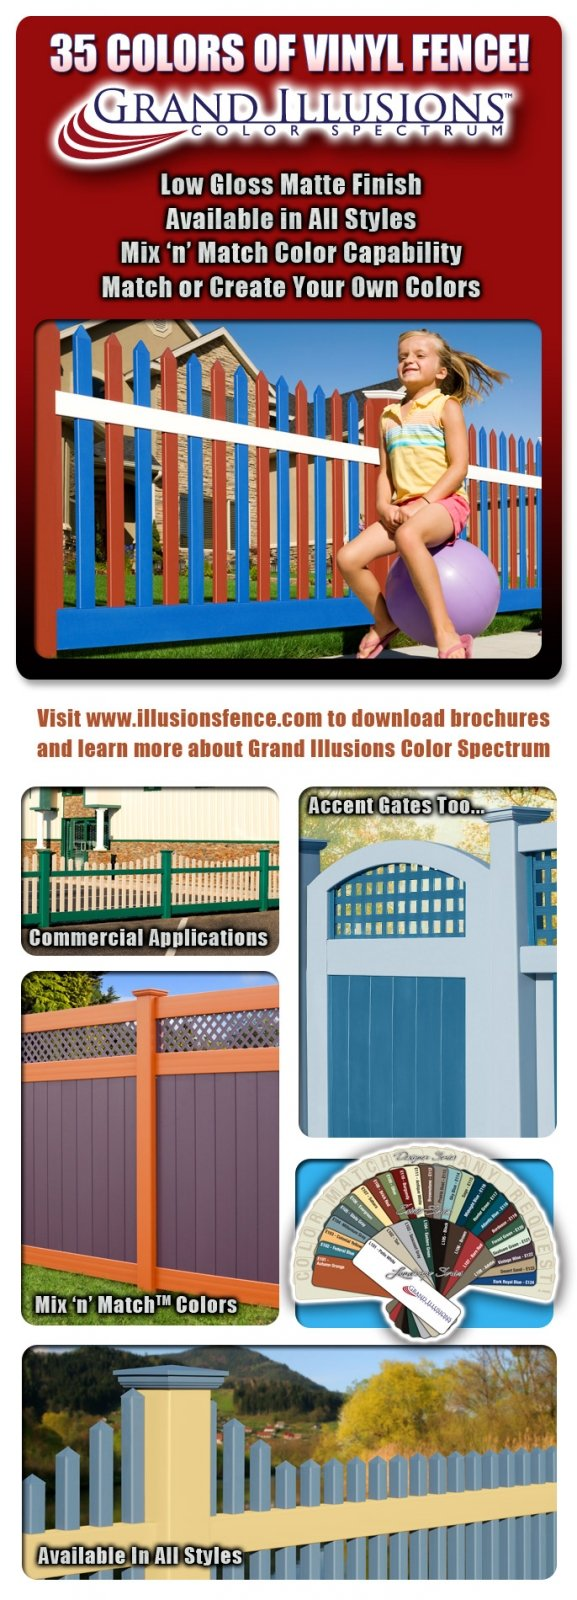 Grand Illusions Color Vinyl Fence